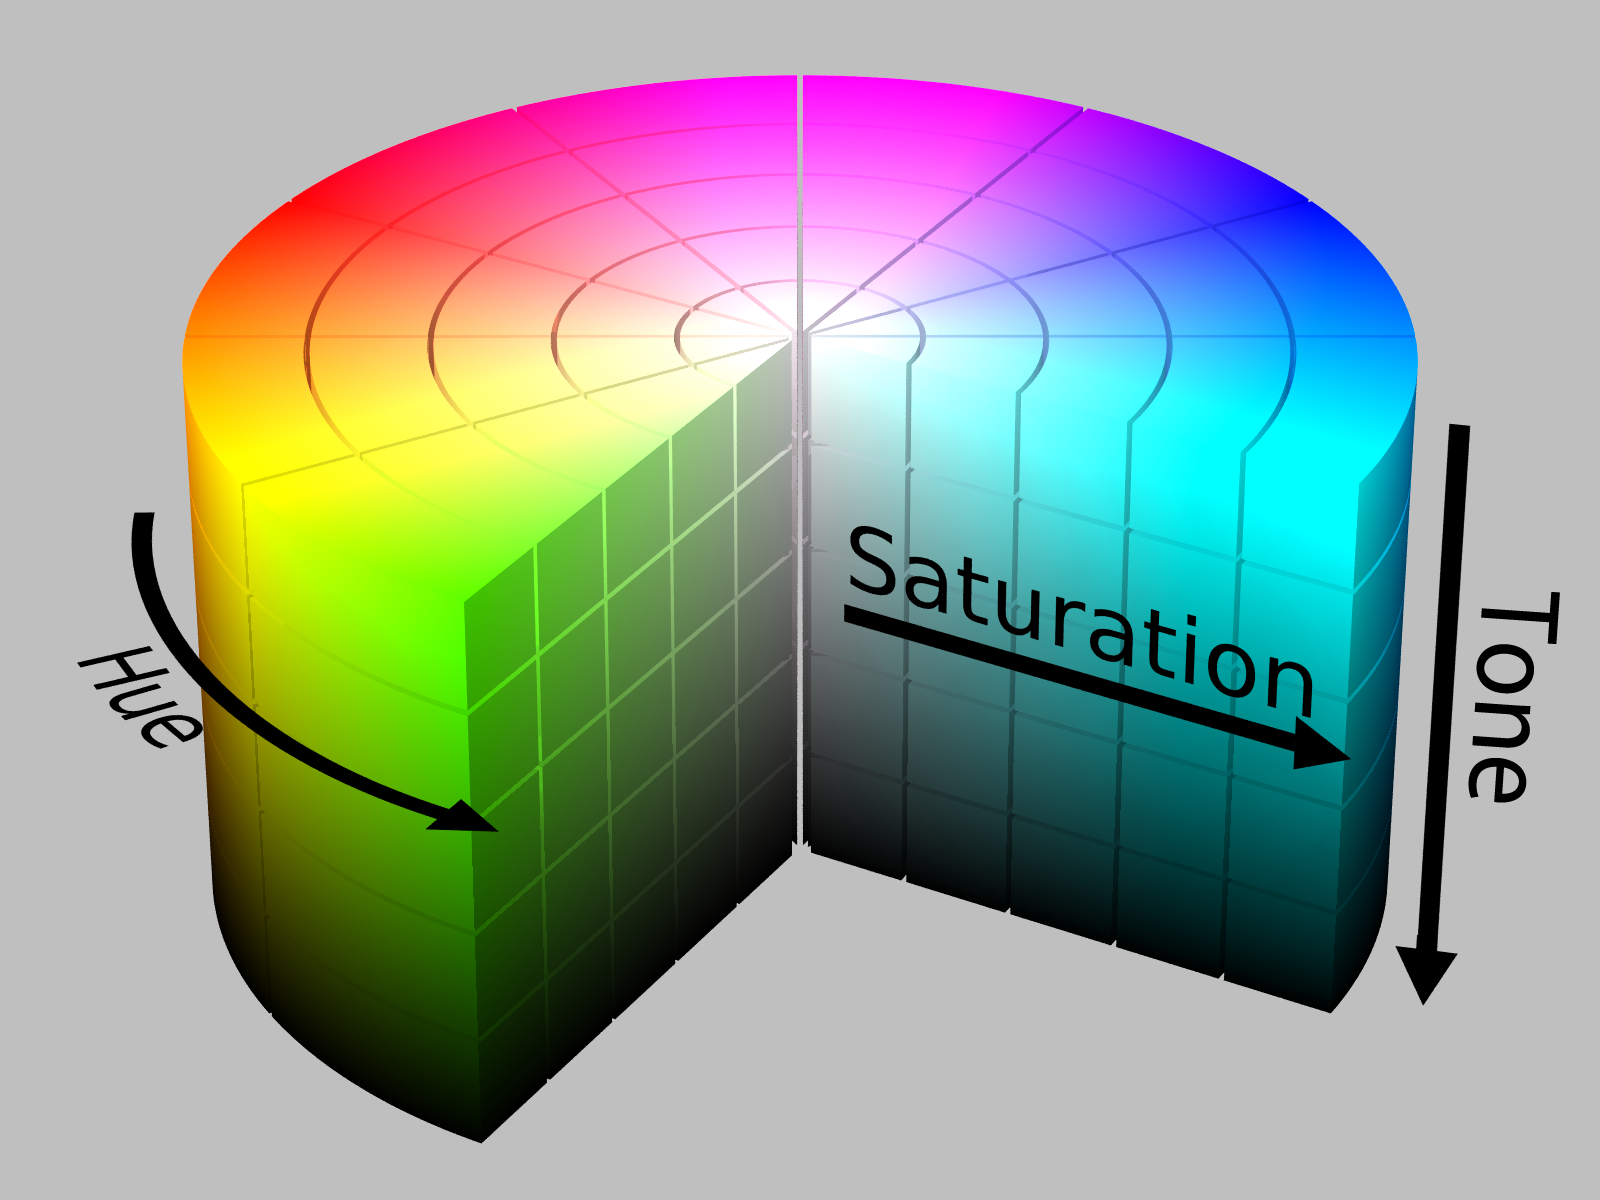 Hue, tone, saturation wheel